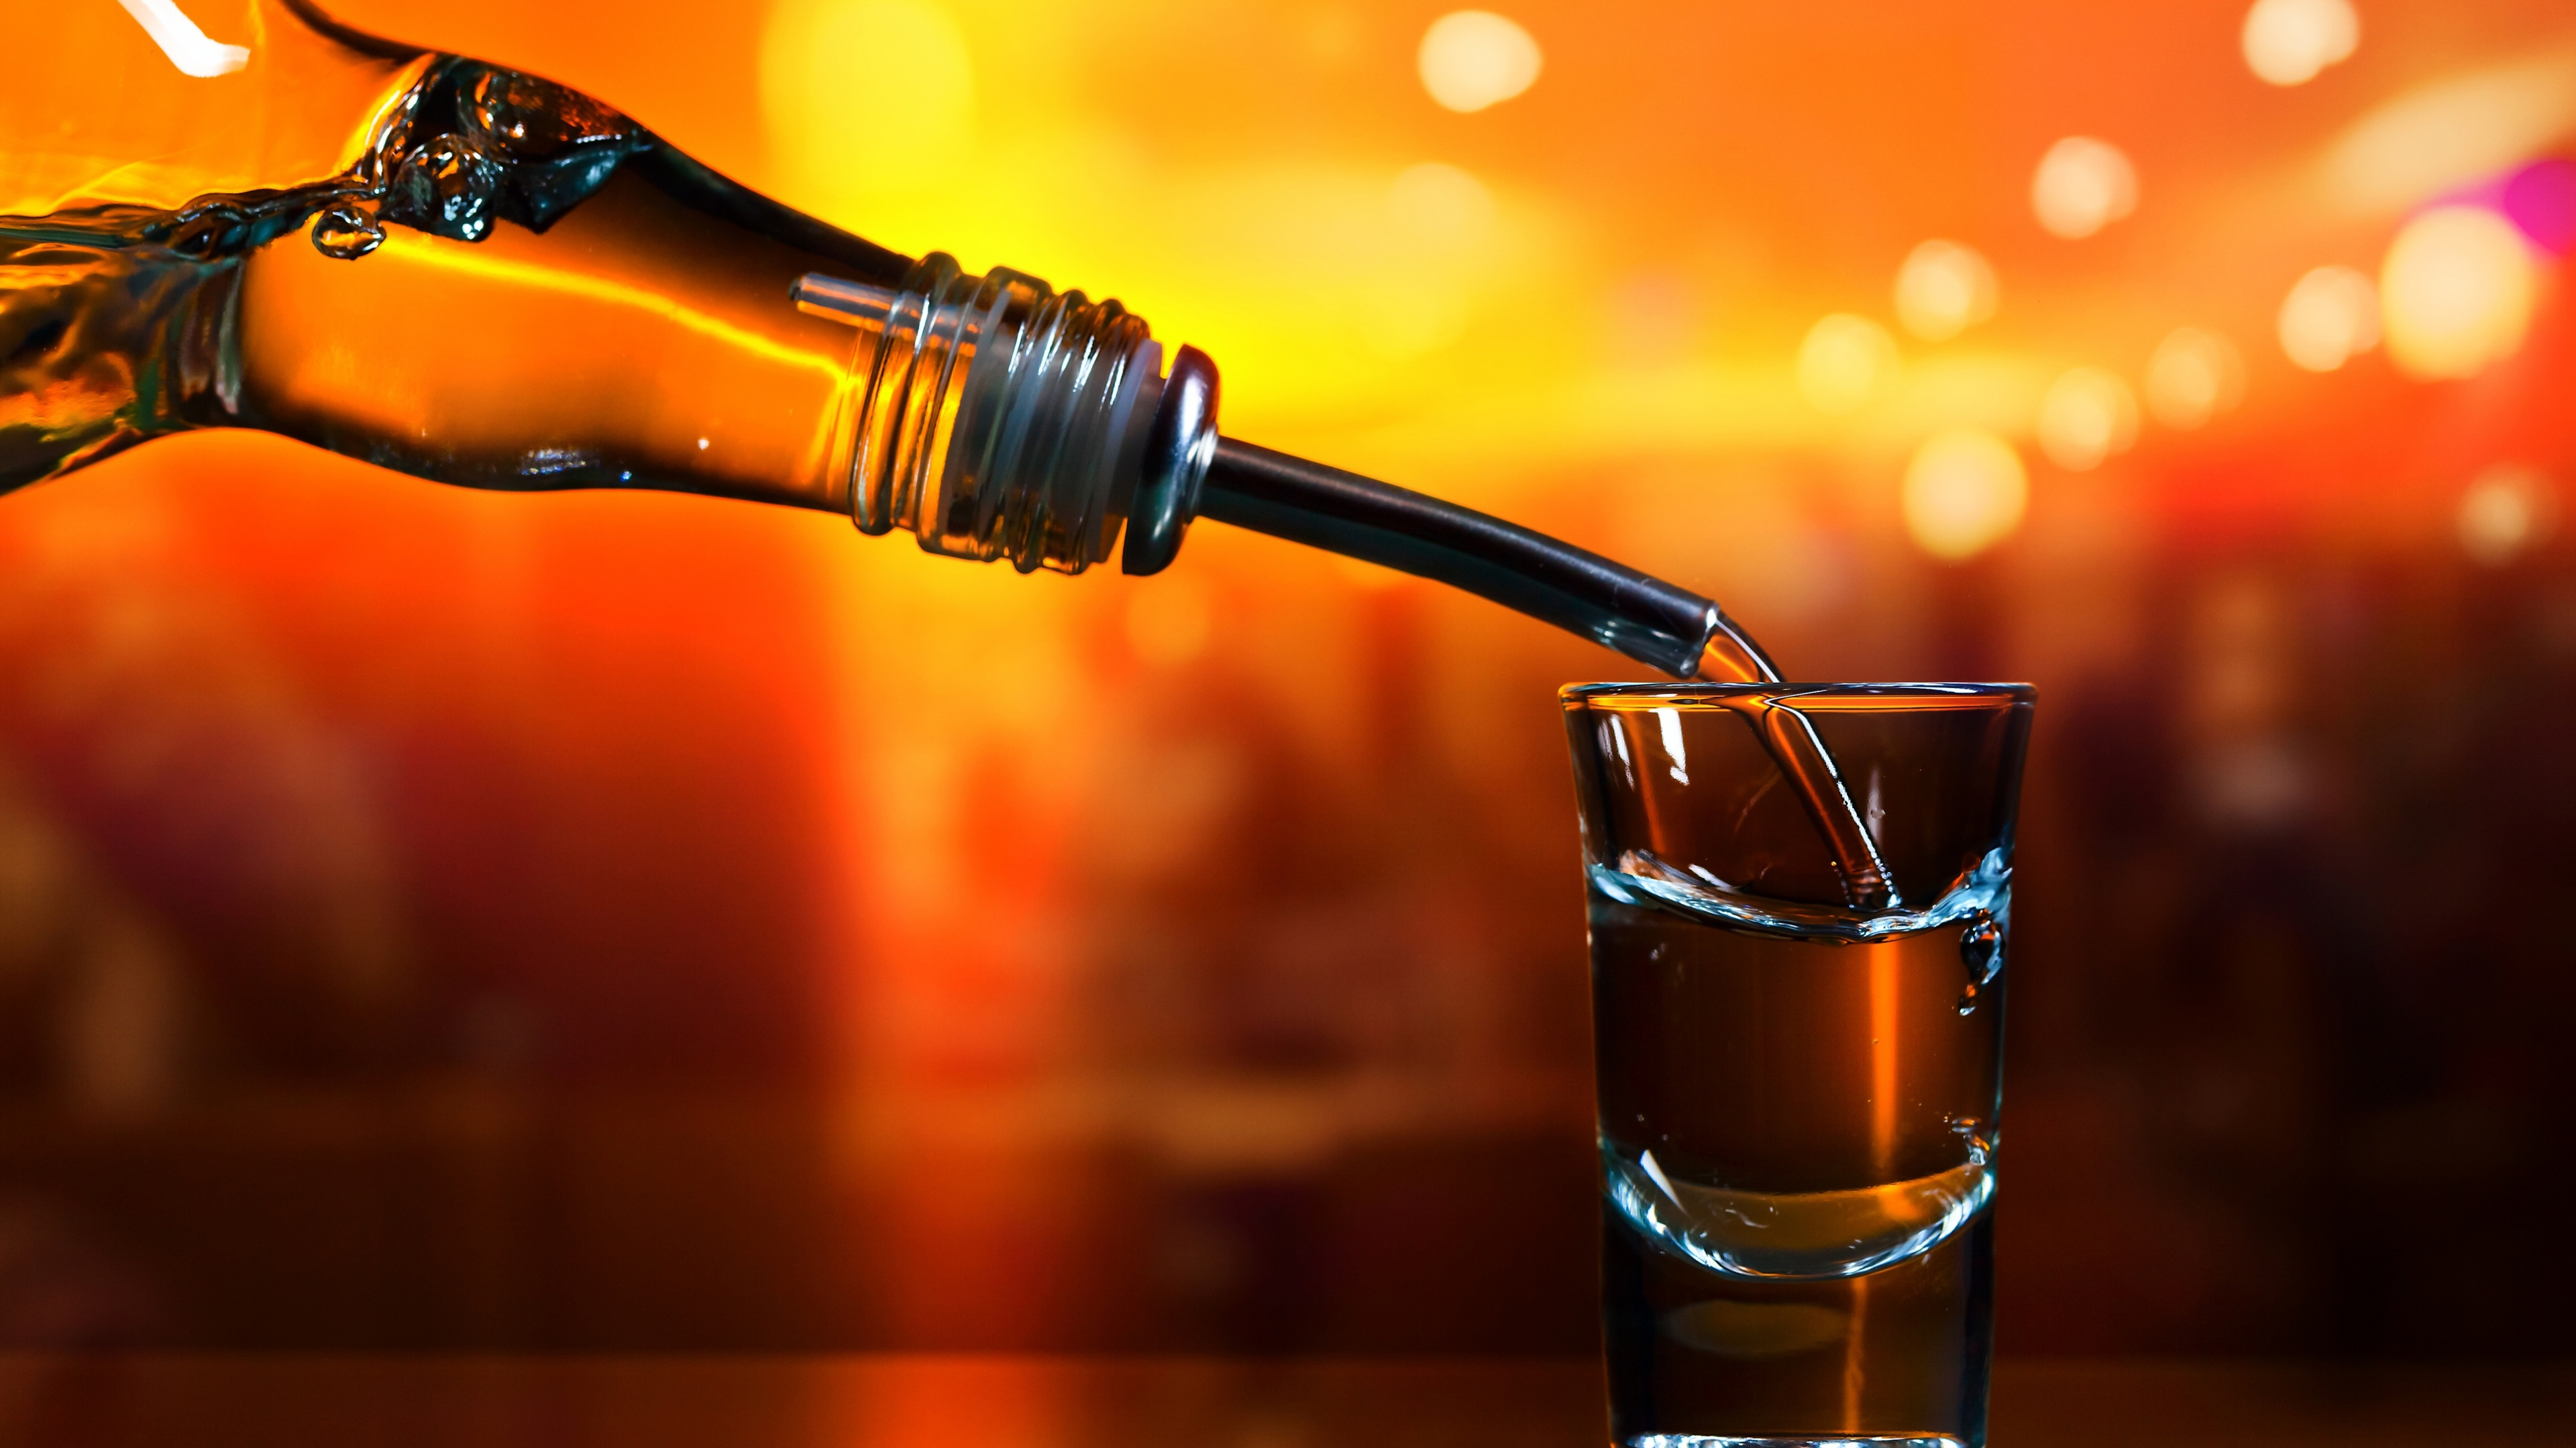 If the proposal becomes reality, the Czechs would have enough Cuban rum for well over a 100 years.